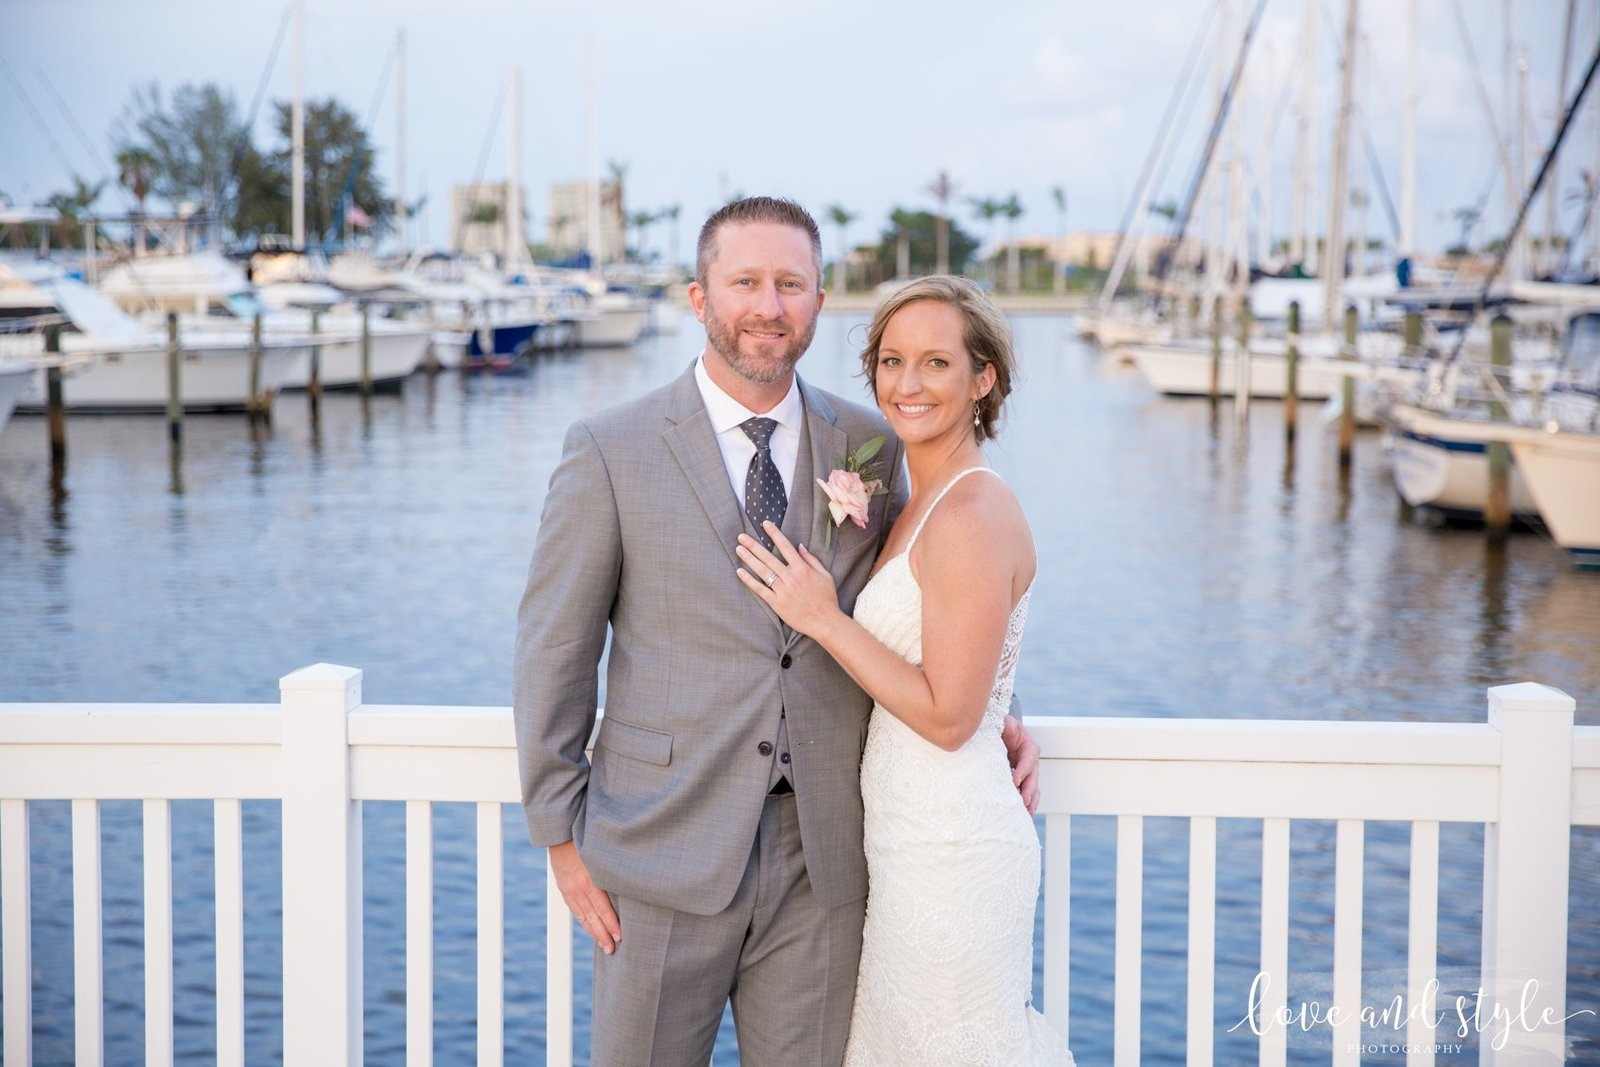 The Riverhouse Reef and Grill Wedding Photography bride and groom portrait on the dock